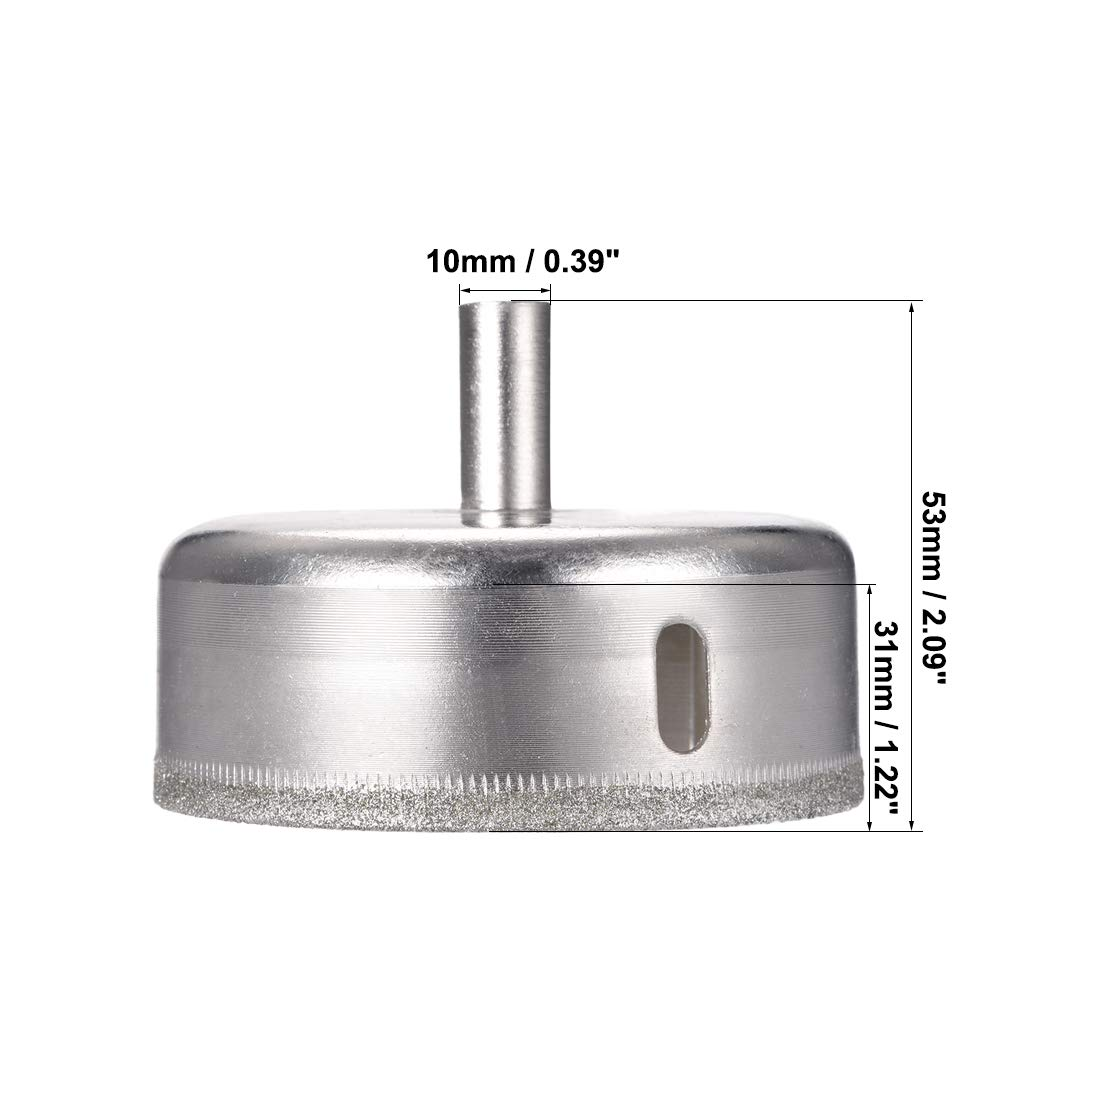 uxcell/® 50mm Diamond Drill Bits Hole Saws for Glass Ceramic Porcelain Tiles